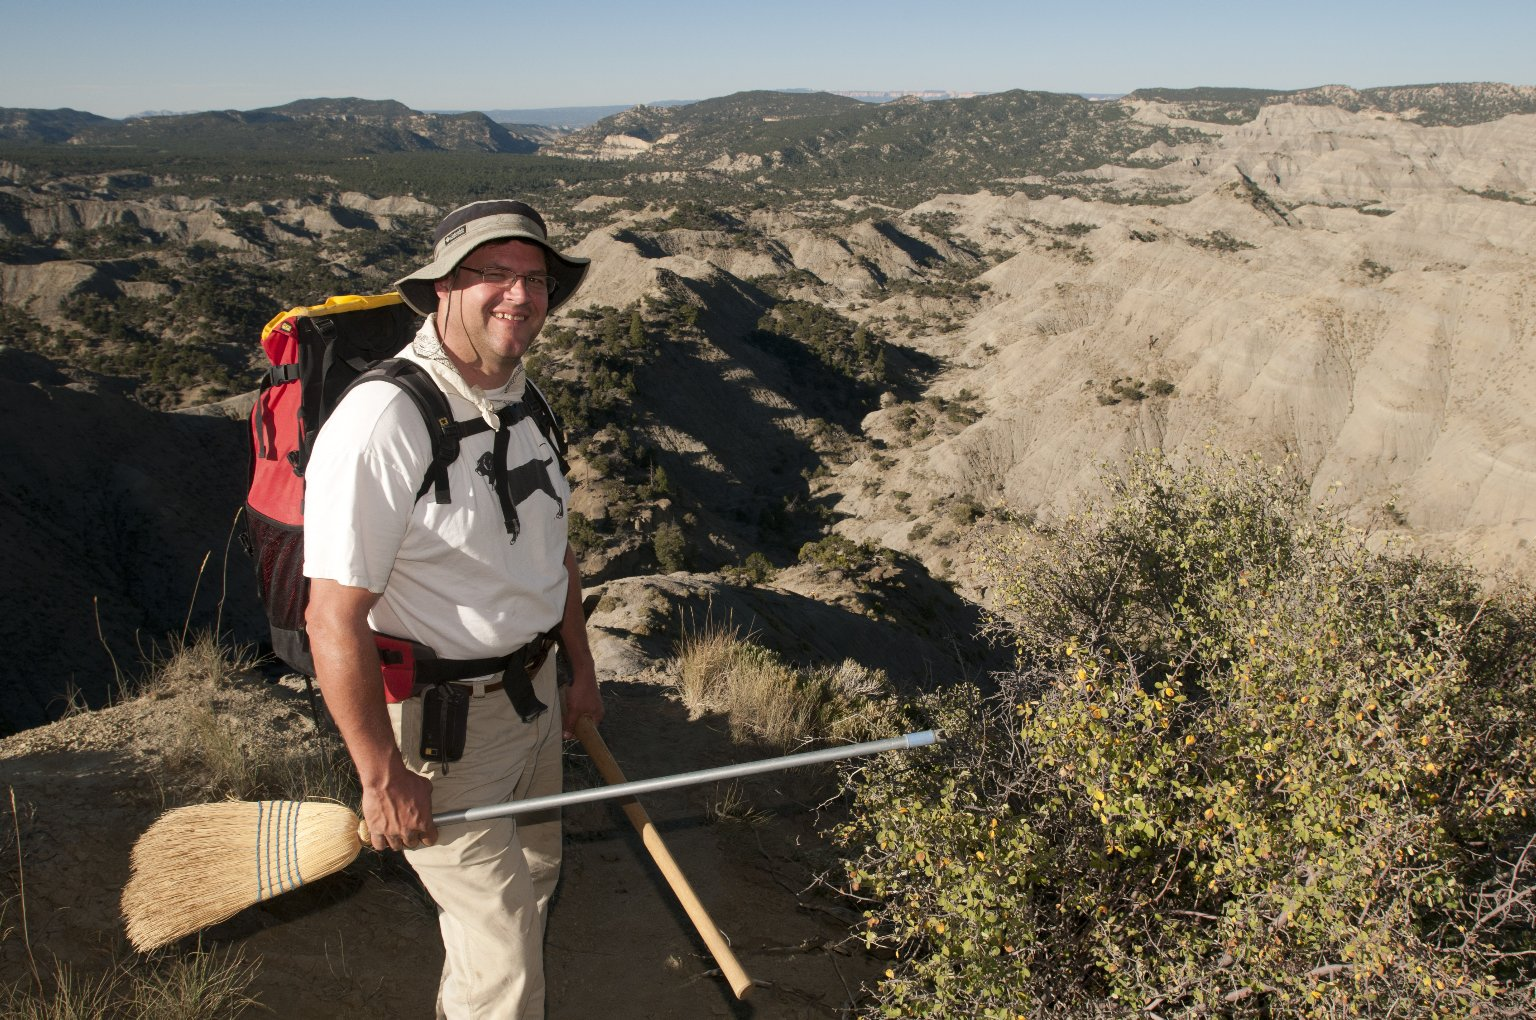 Dr. Kirk Johnson poses holding his tools with the Kaiparowits Plateau in the background.